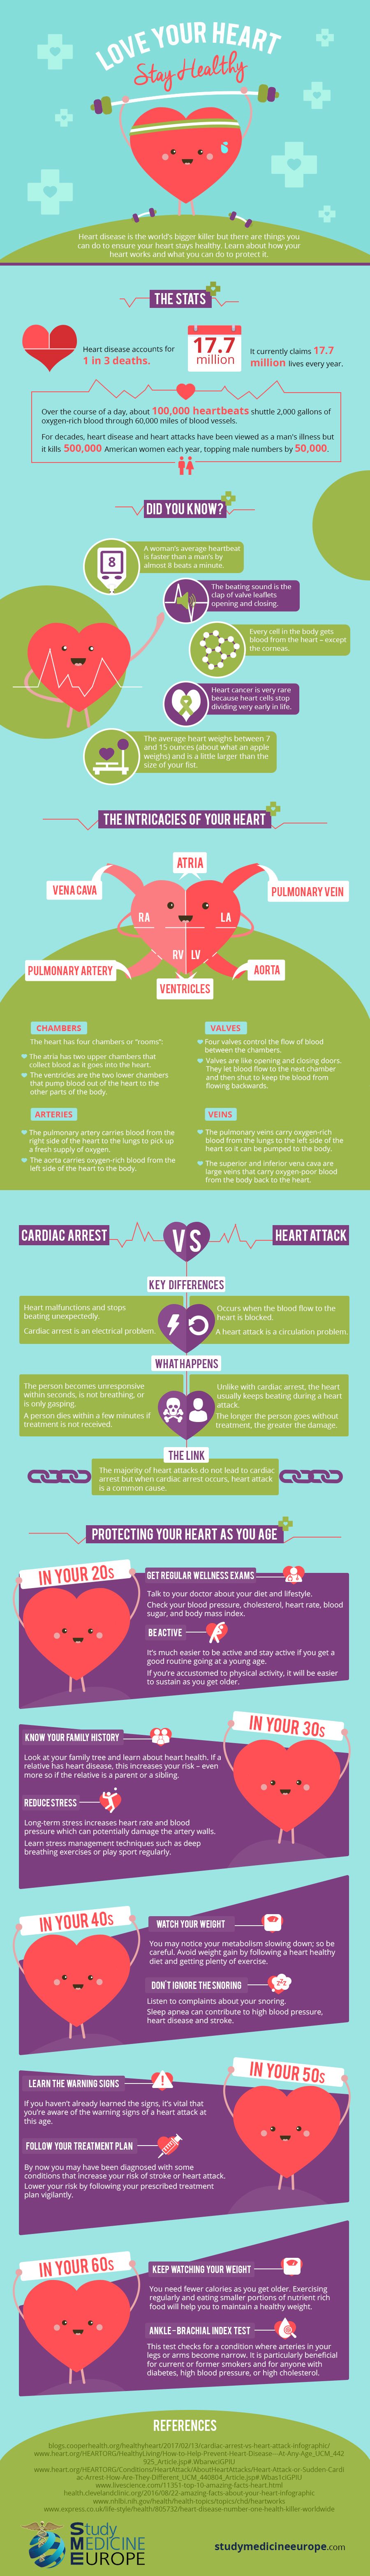 love-your-heart-stay-healthy-infographic (1).jpg